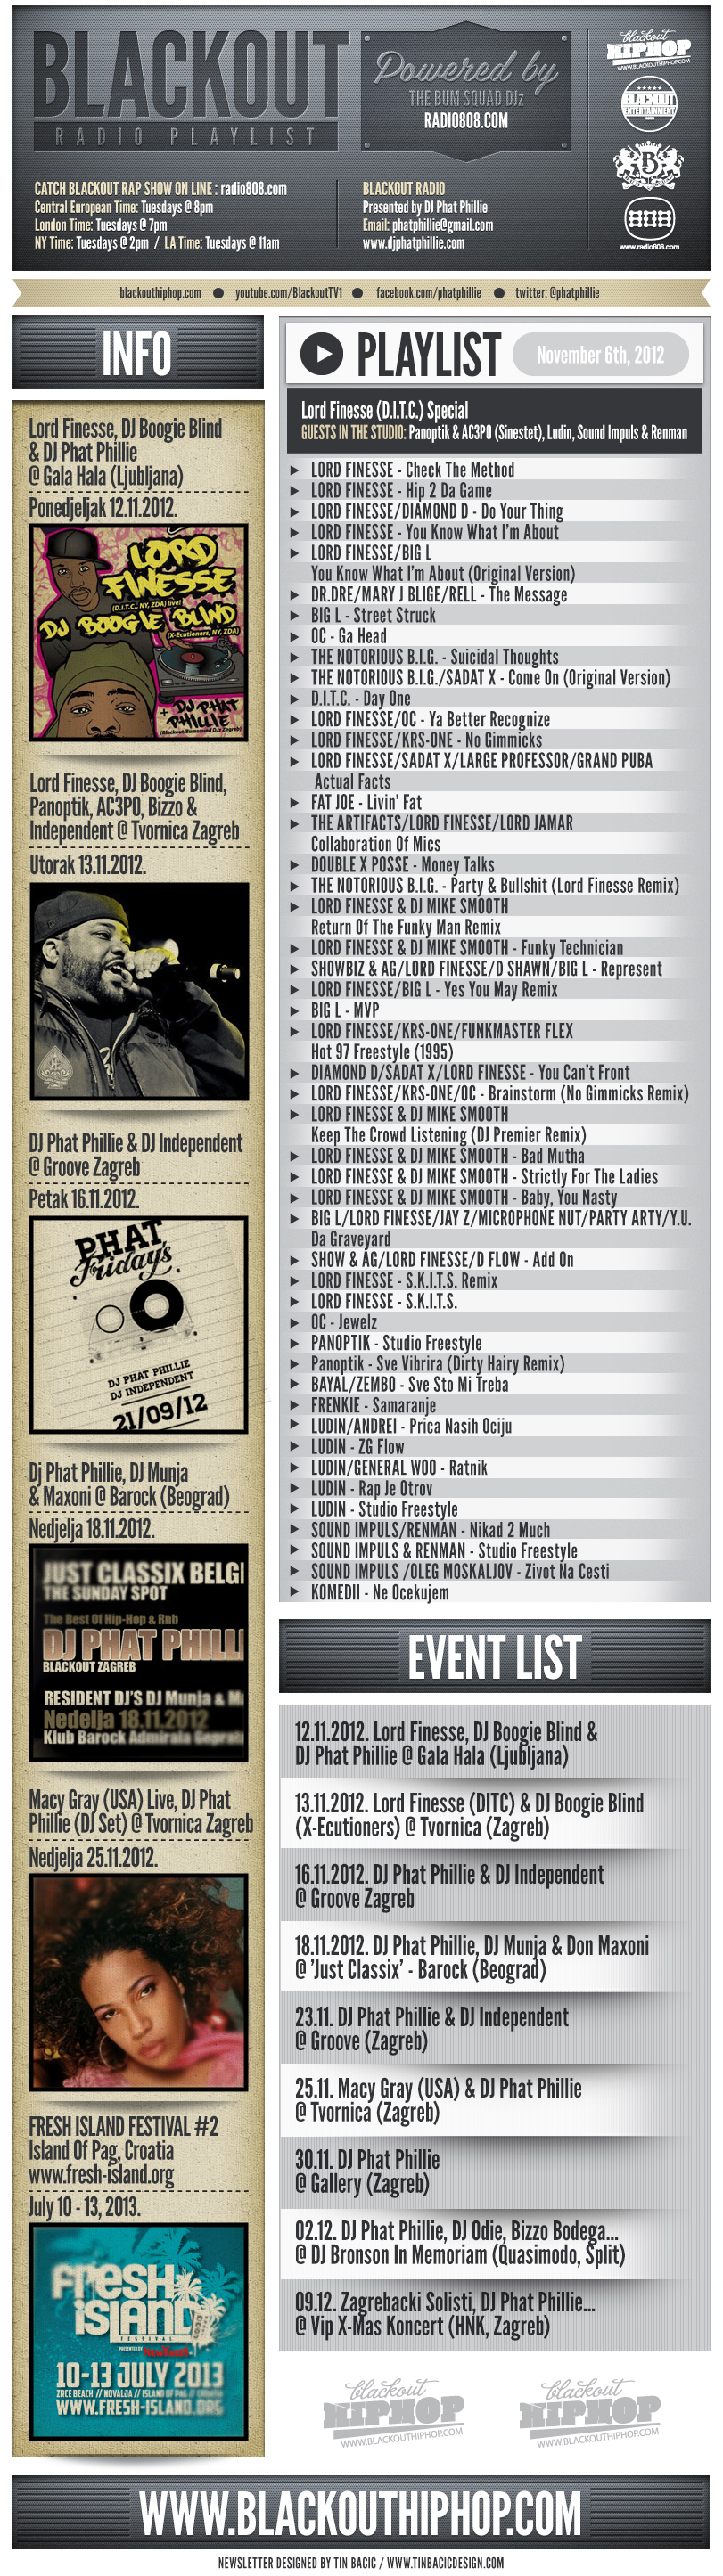 PLAYLIST Lord Finesse 06 11 Blackout Radio Playlist & DL Links (Nov 6th, 2012)    Lord Finesse Special